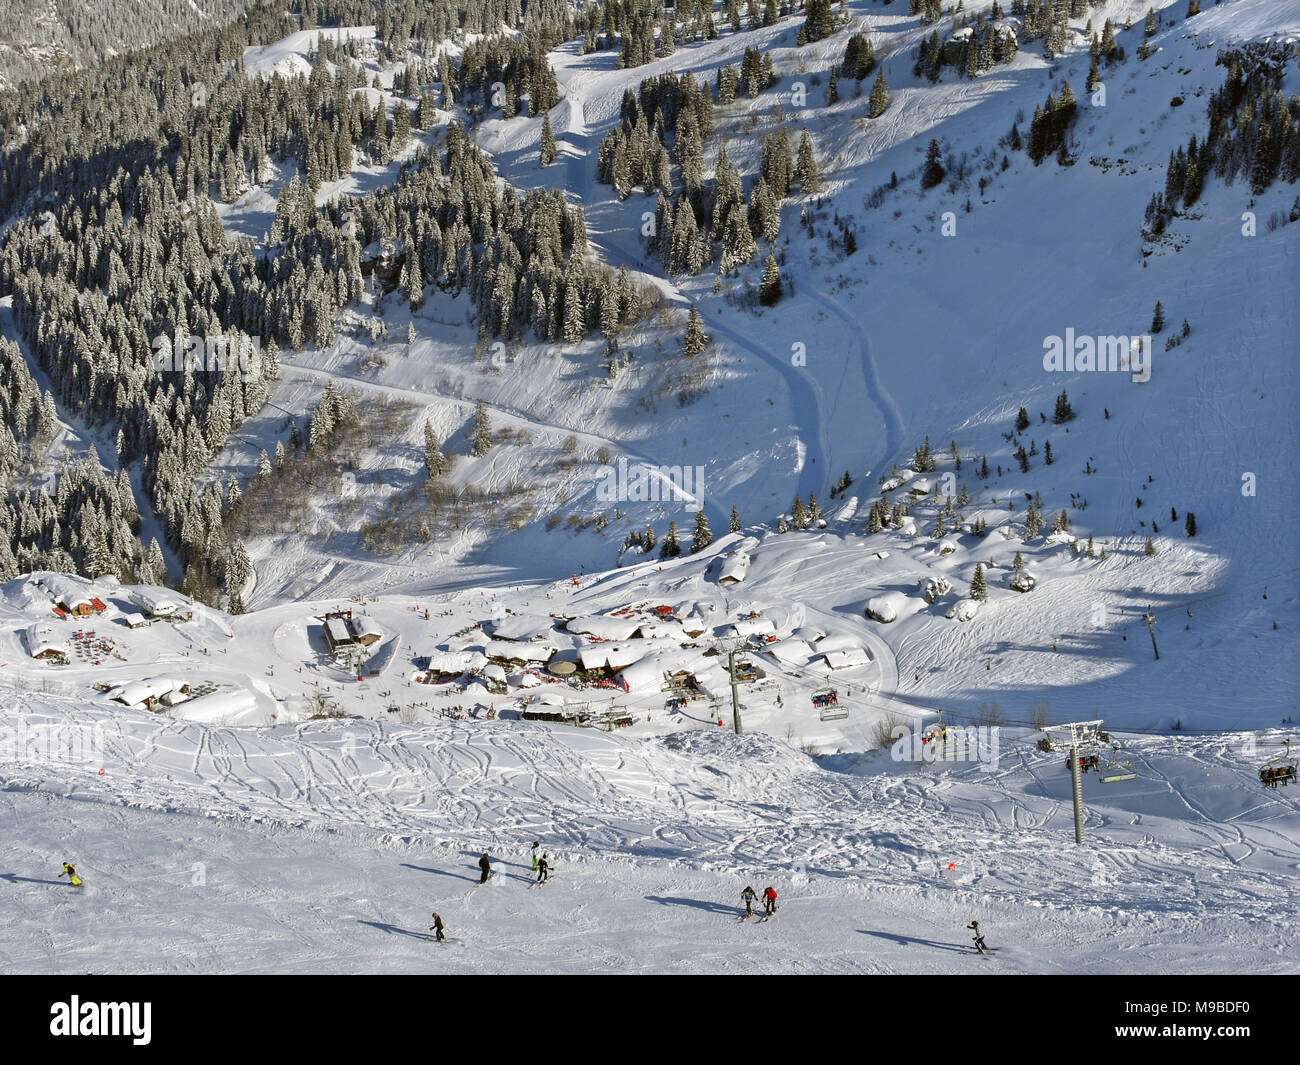 The busy ski resort of Chatel in the Portes du Soleil area of France, restaurants at Pre La Joux Stock Photo